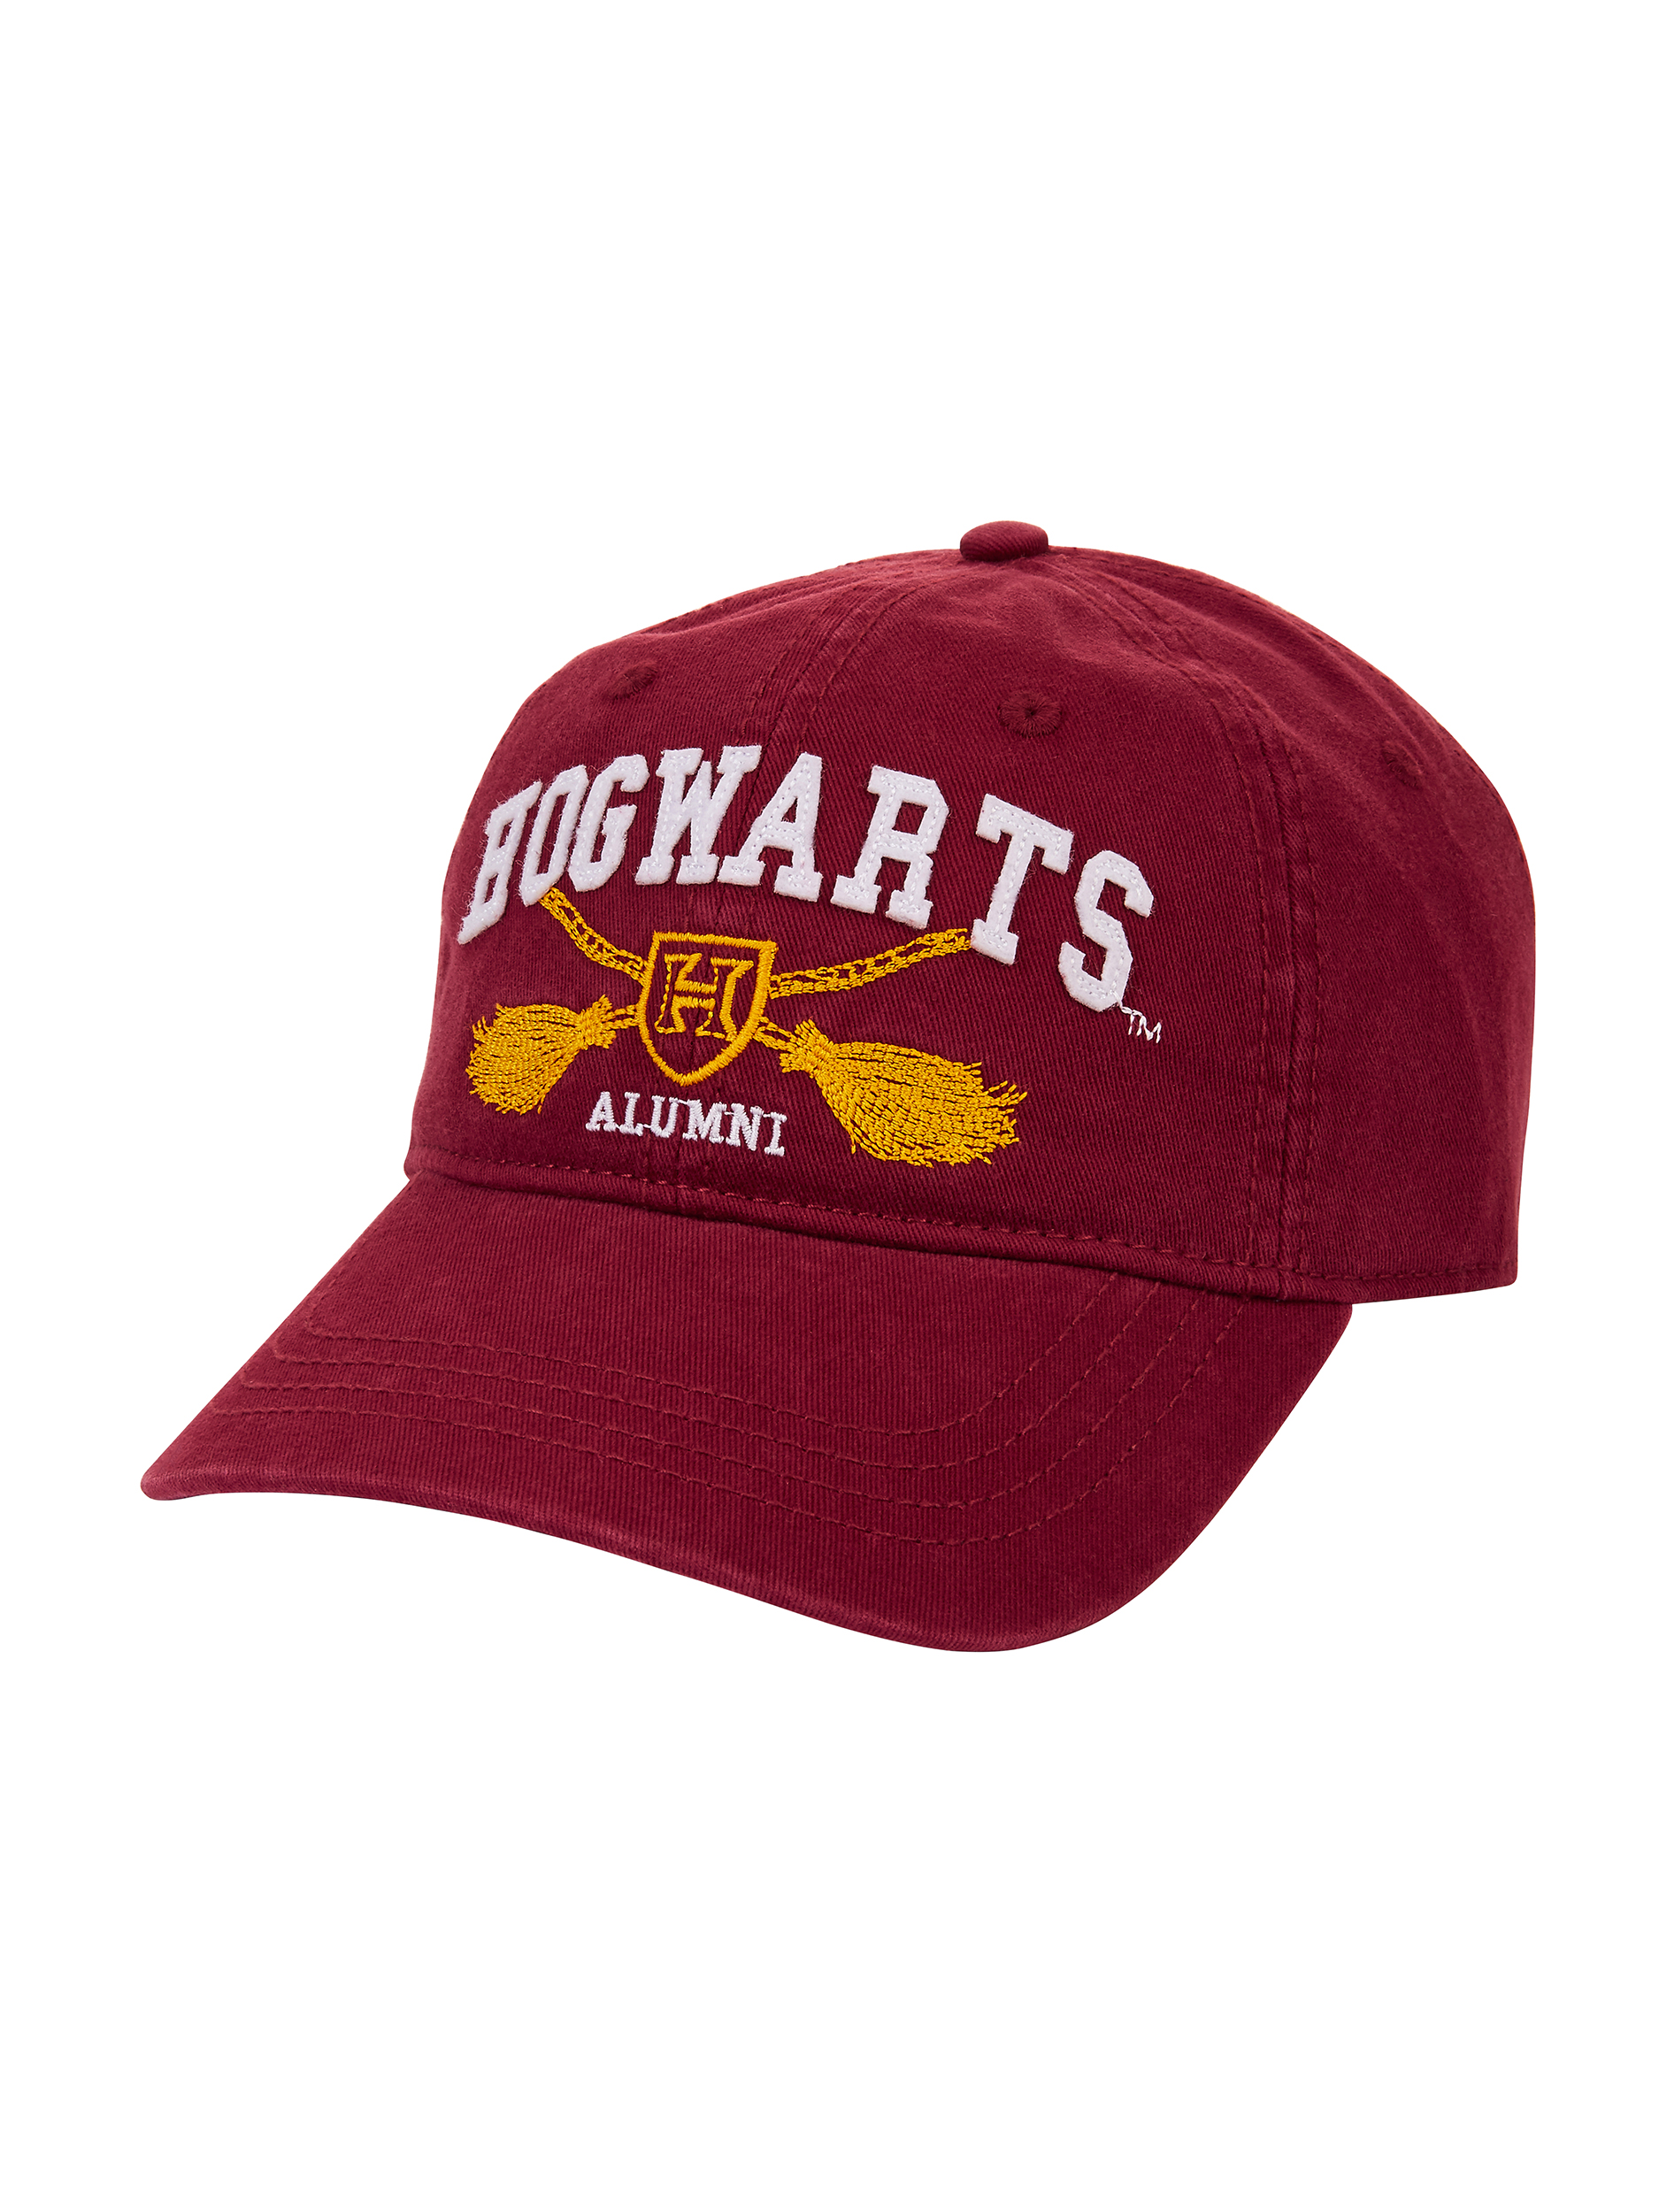 Harry Potter Hogwarts Alumni Maroon Dad Cap